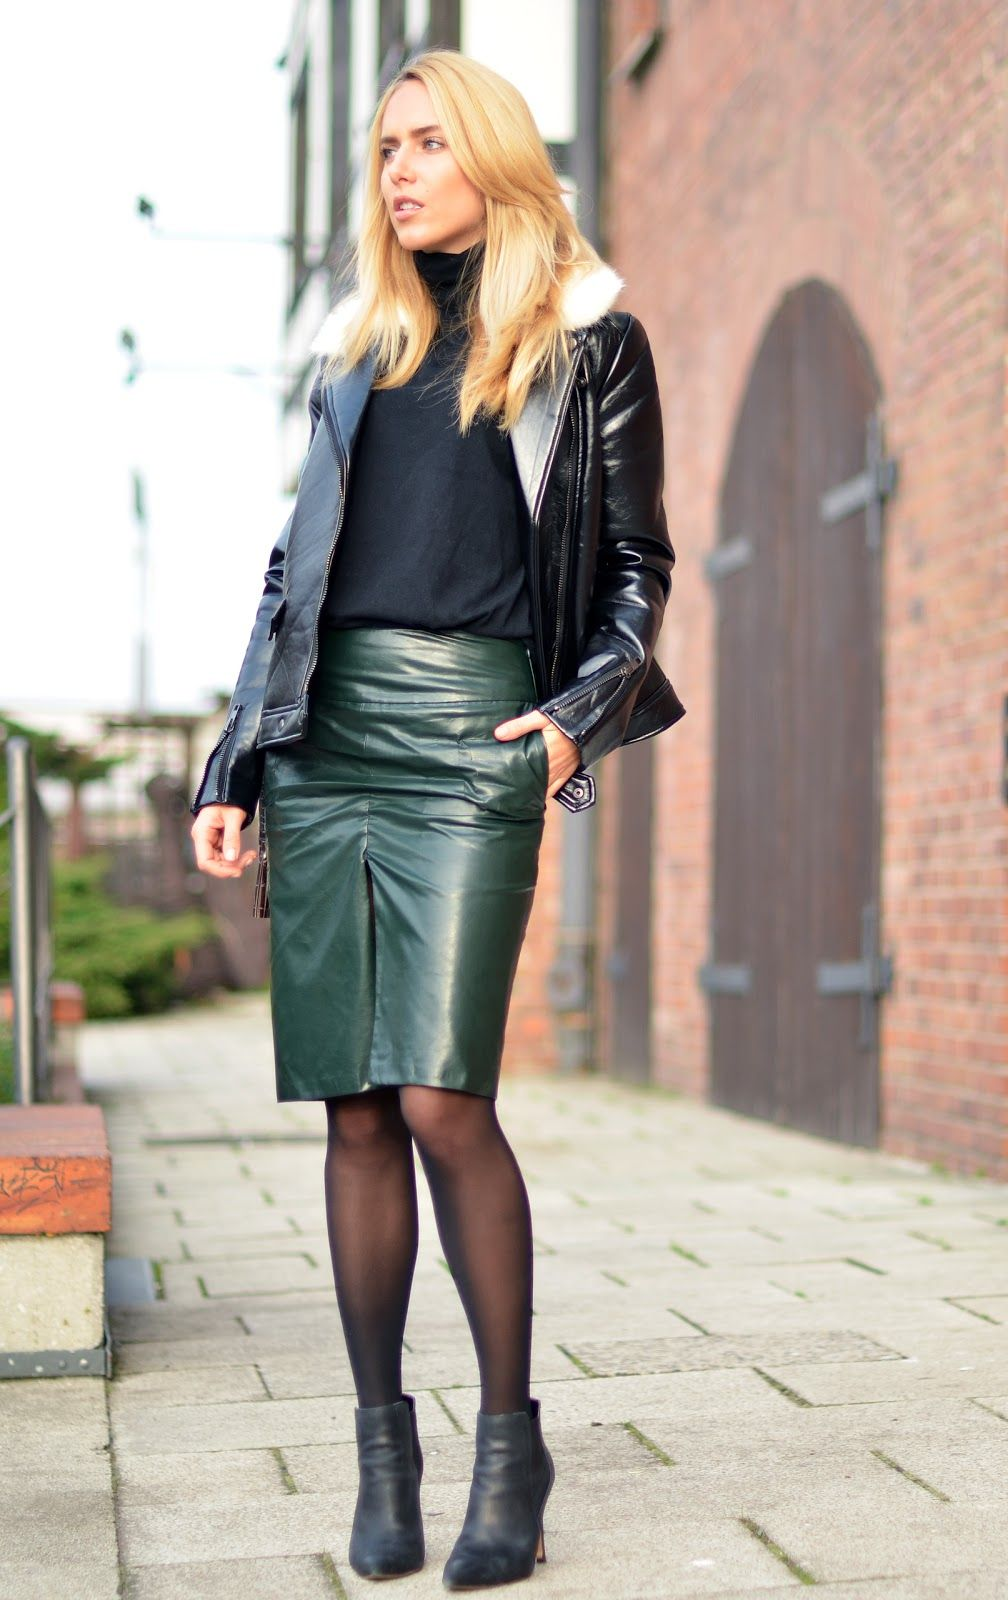 71f8dba4d4771 Green leather midi skirt black leather jacket ankle boots